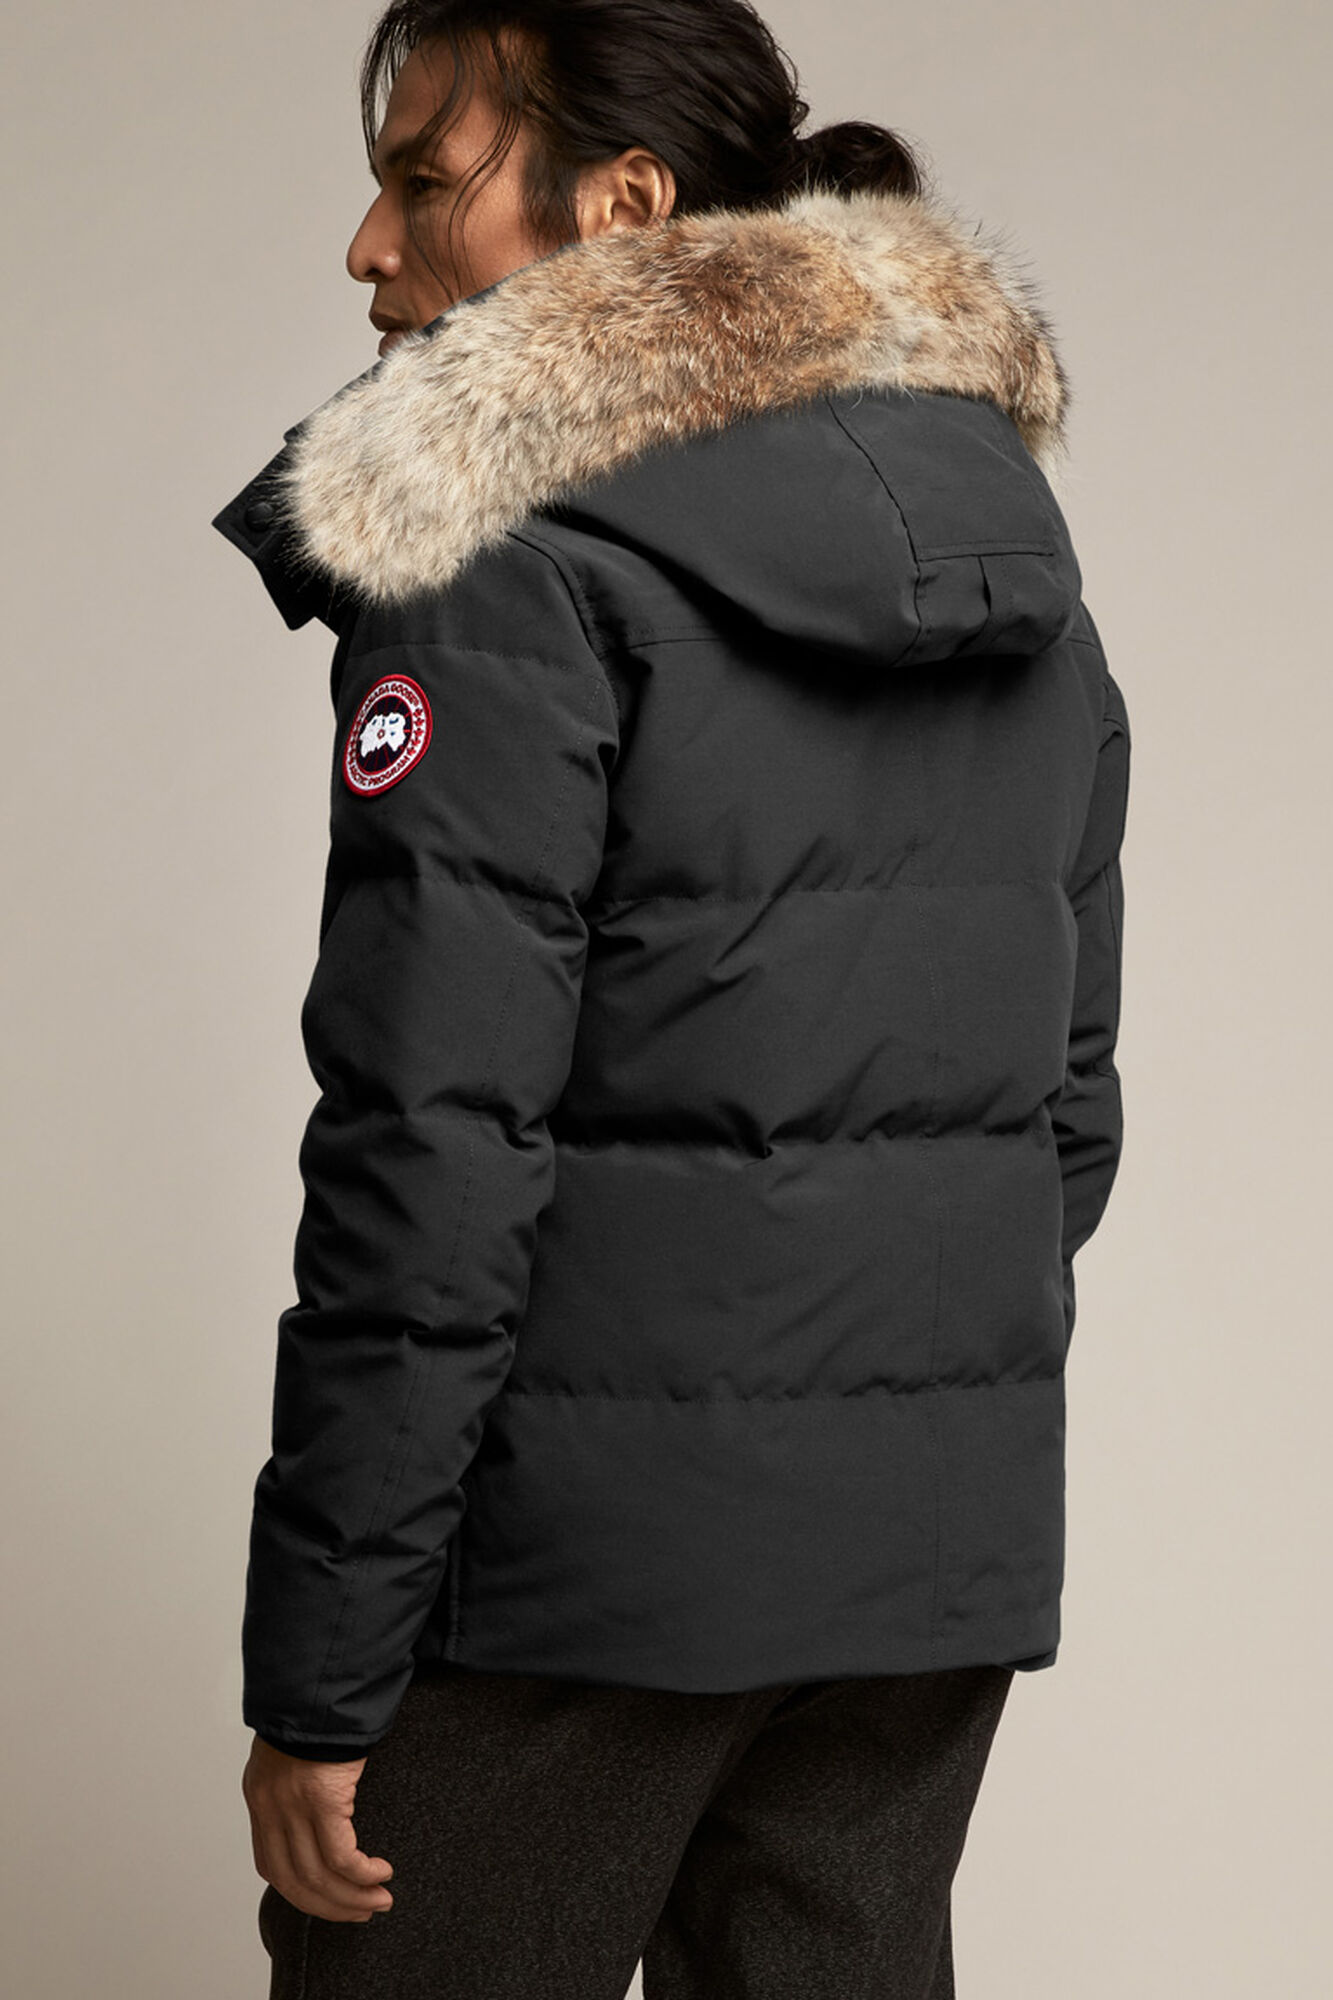 wyndham parka fusion fit canada goose. Black Bedroom Furniture Sets. Home Design Ideas